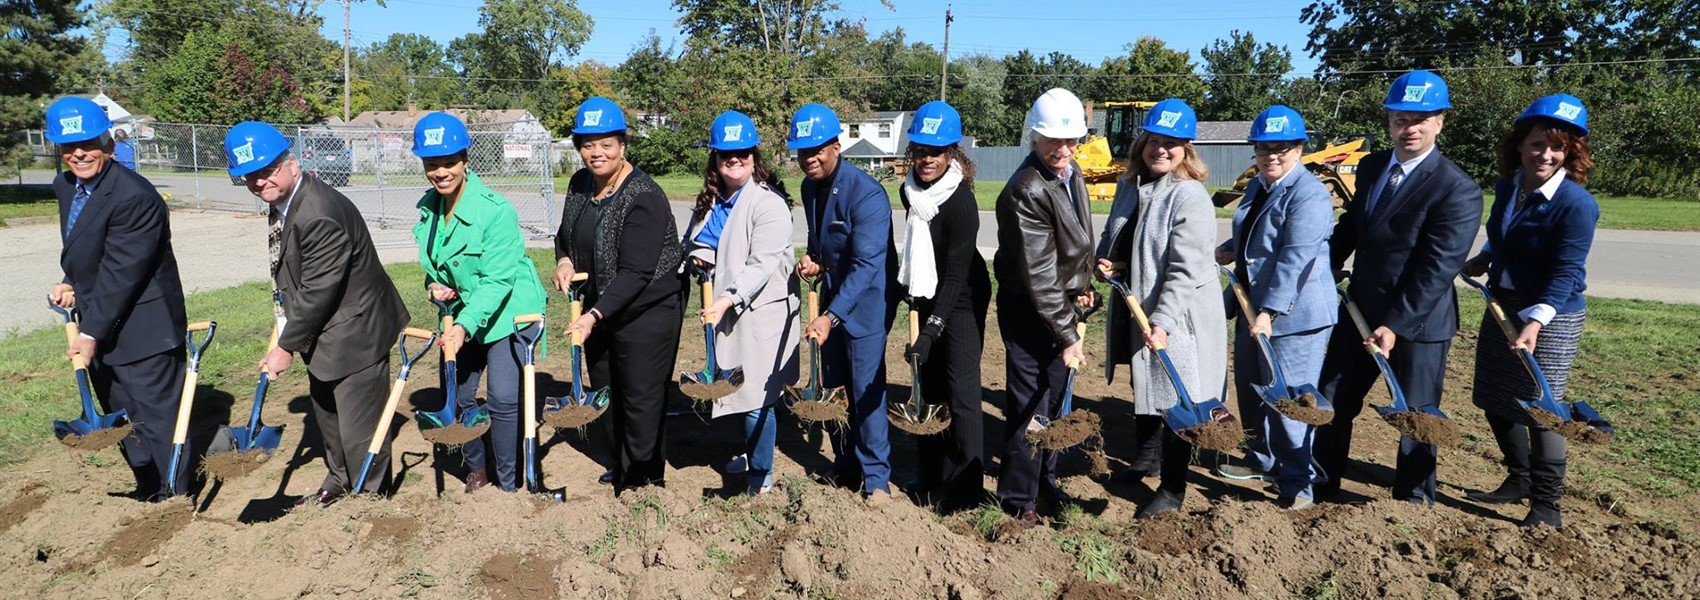 Ground breaking for the K6 campus